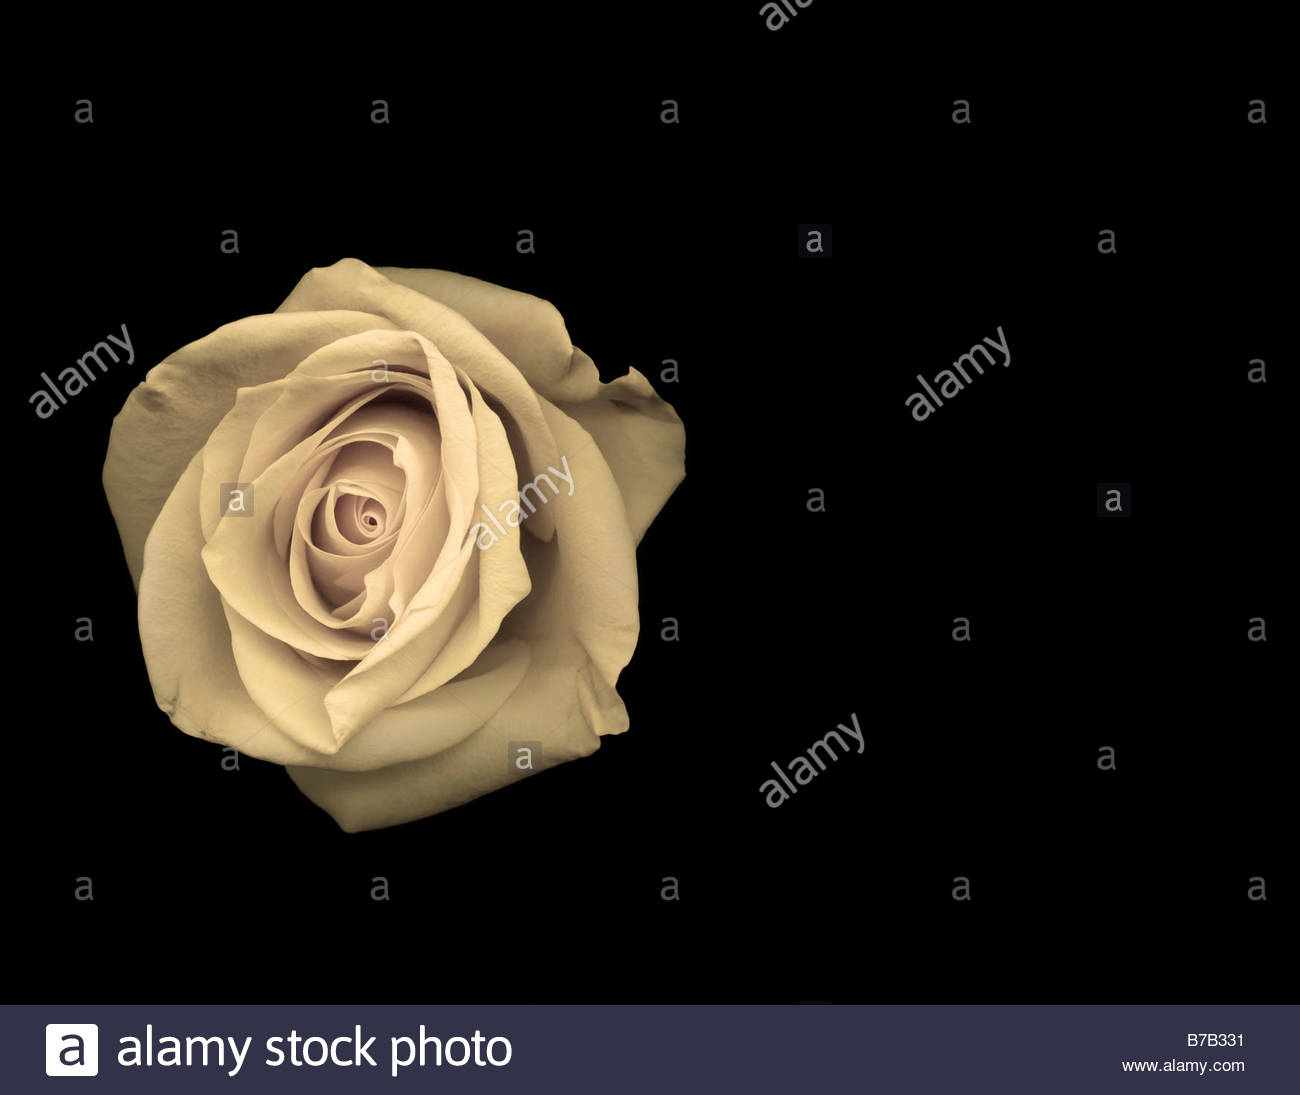 Studio shot of rose - Stock Image